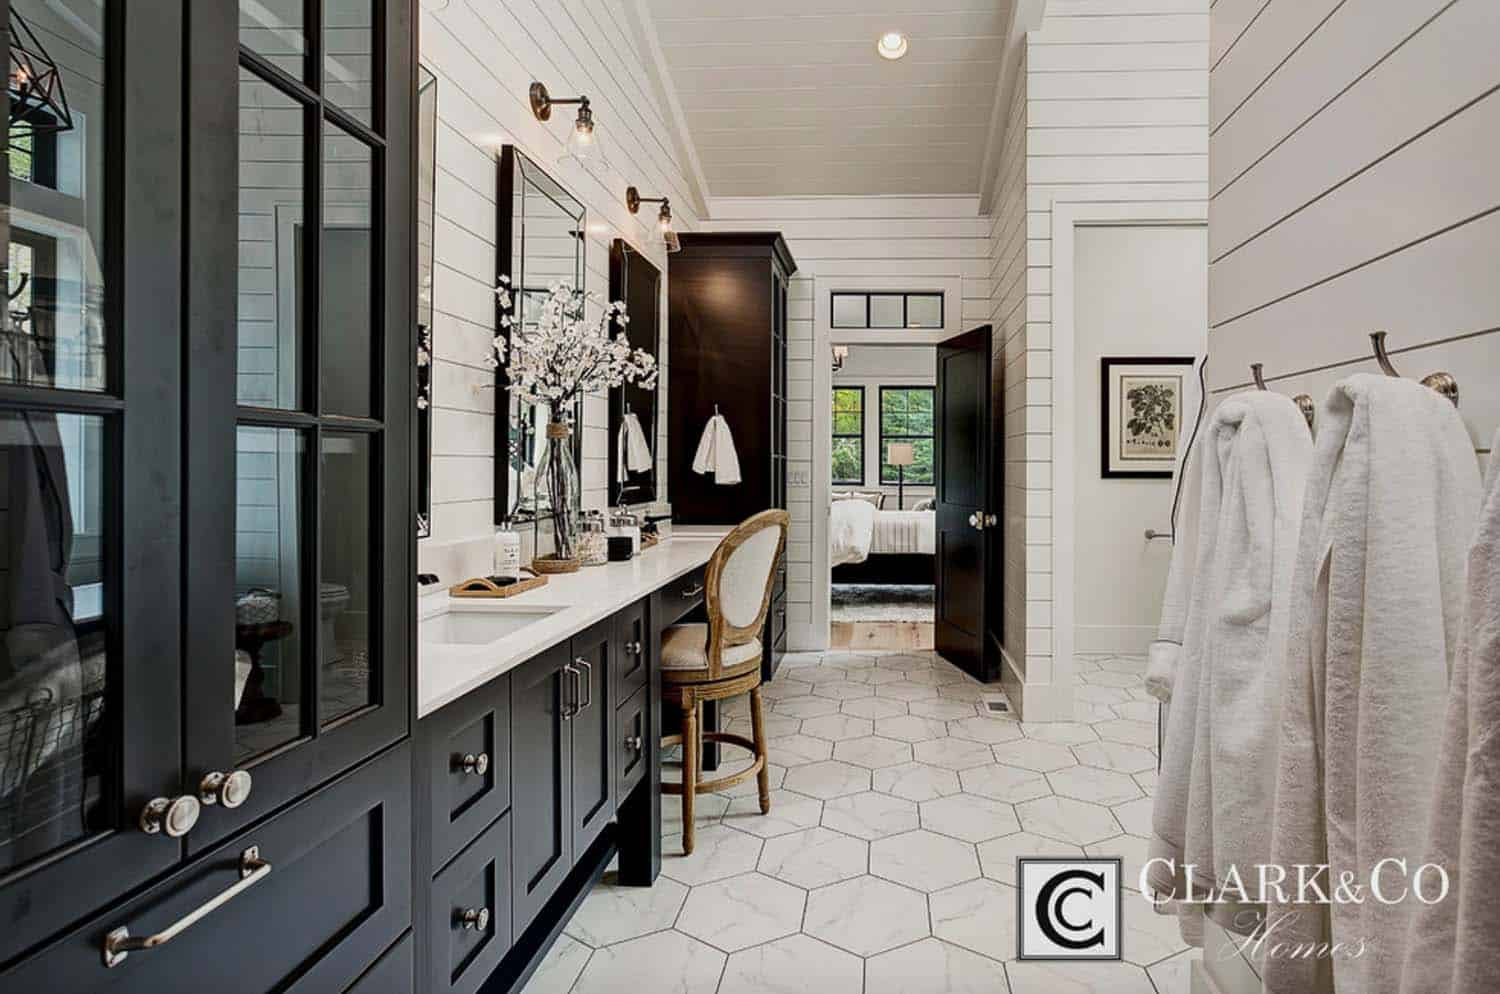 Modern Farmhouse Style-Clark and Co Homes-36-1 Kindesign